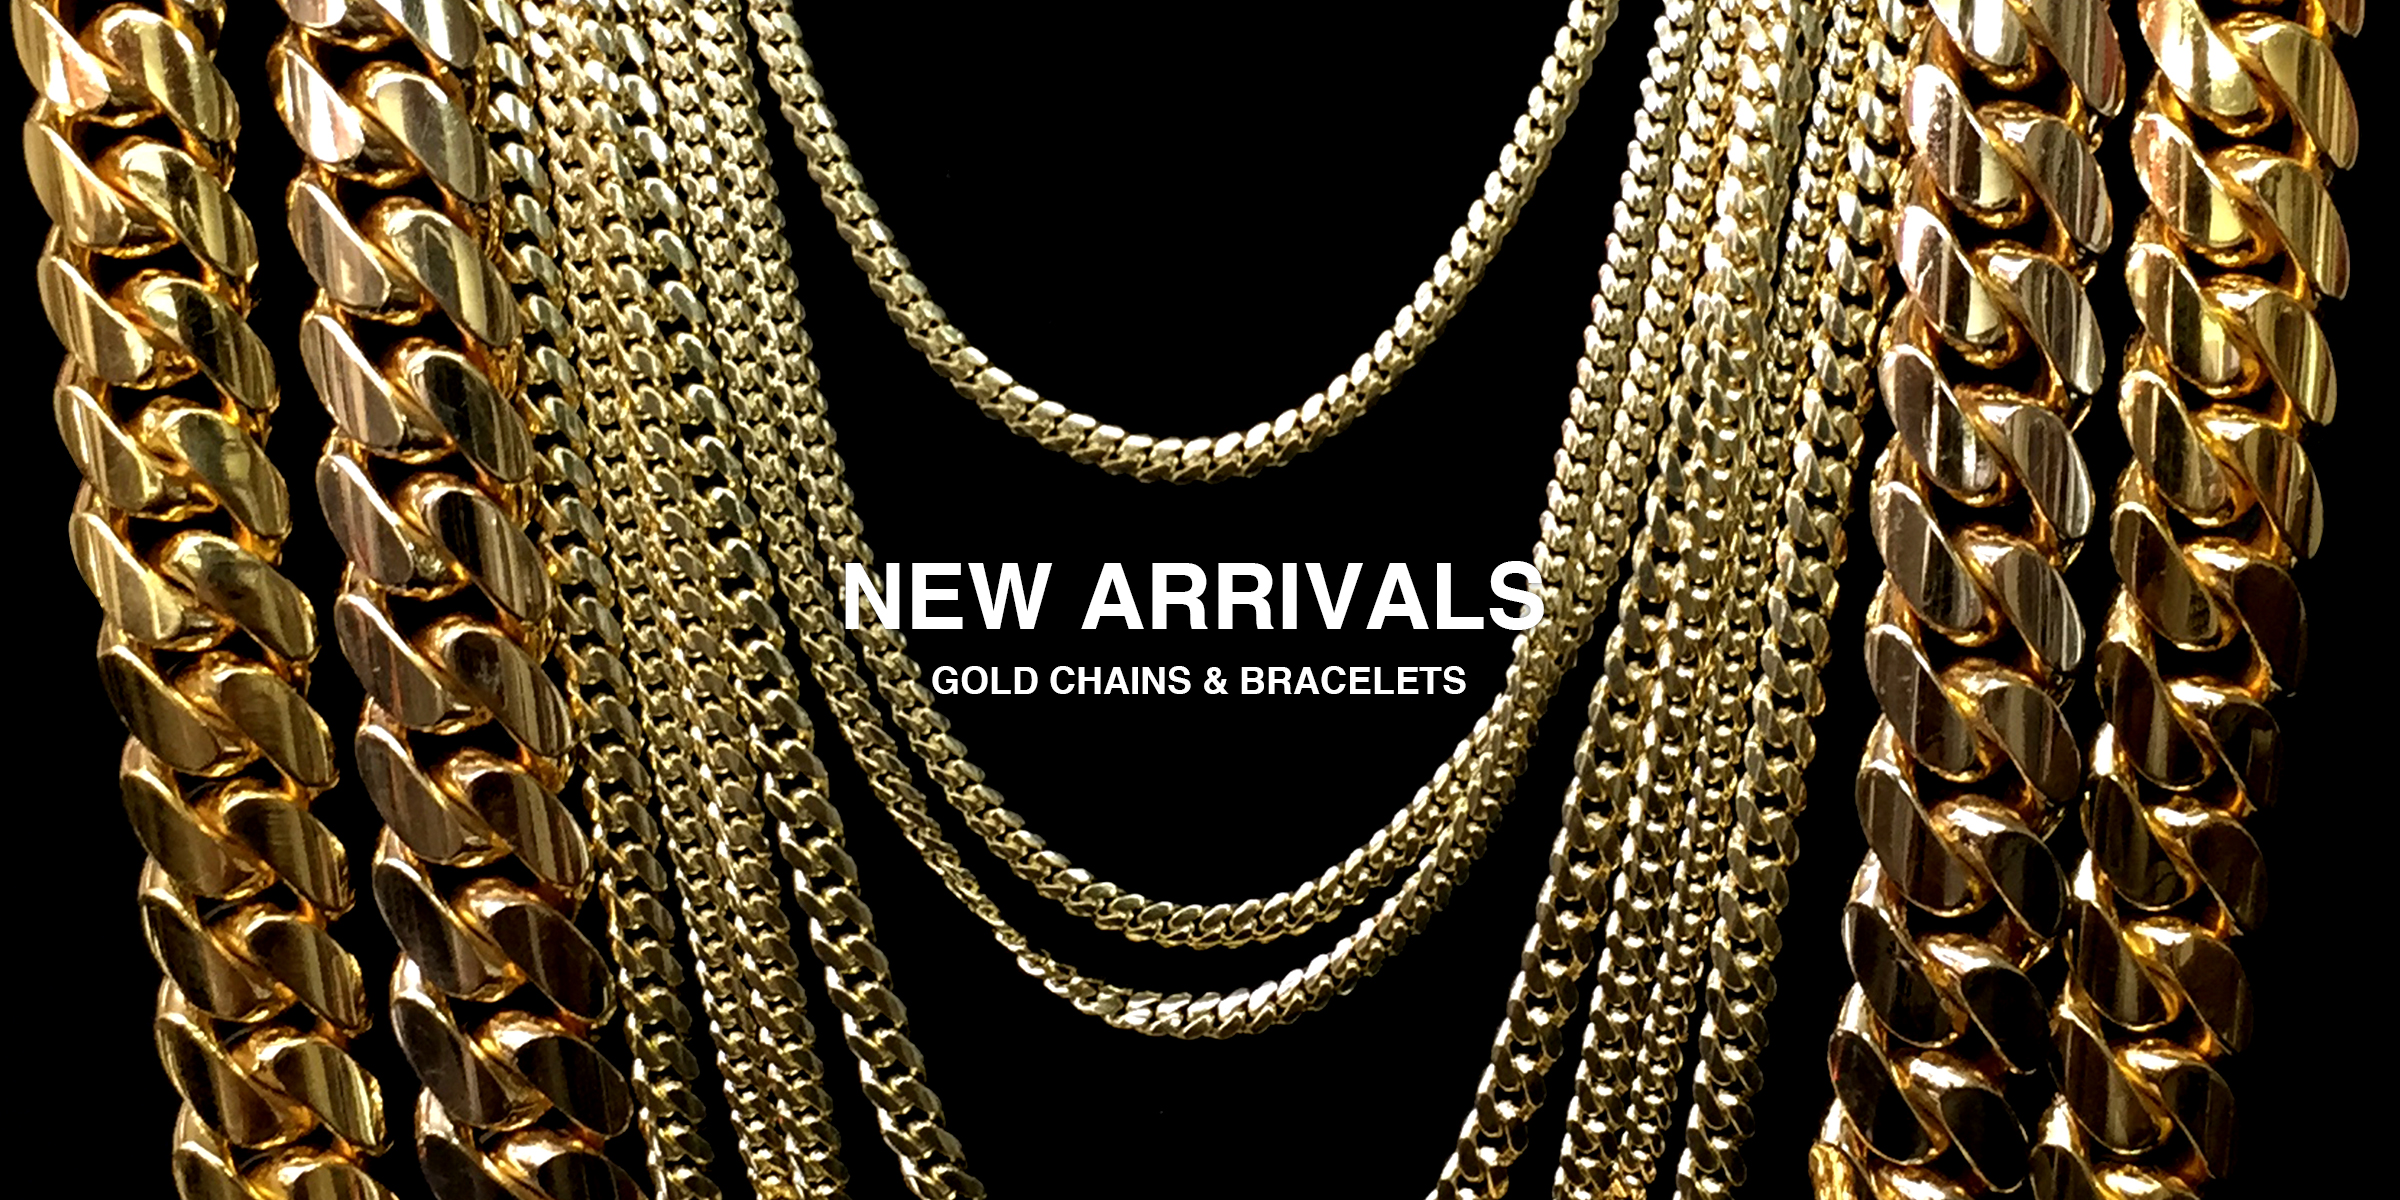 GRILLZ JEWELZ NEW ARRIVALS